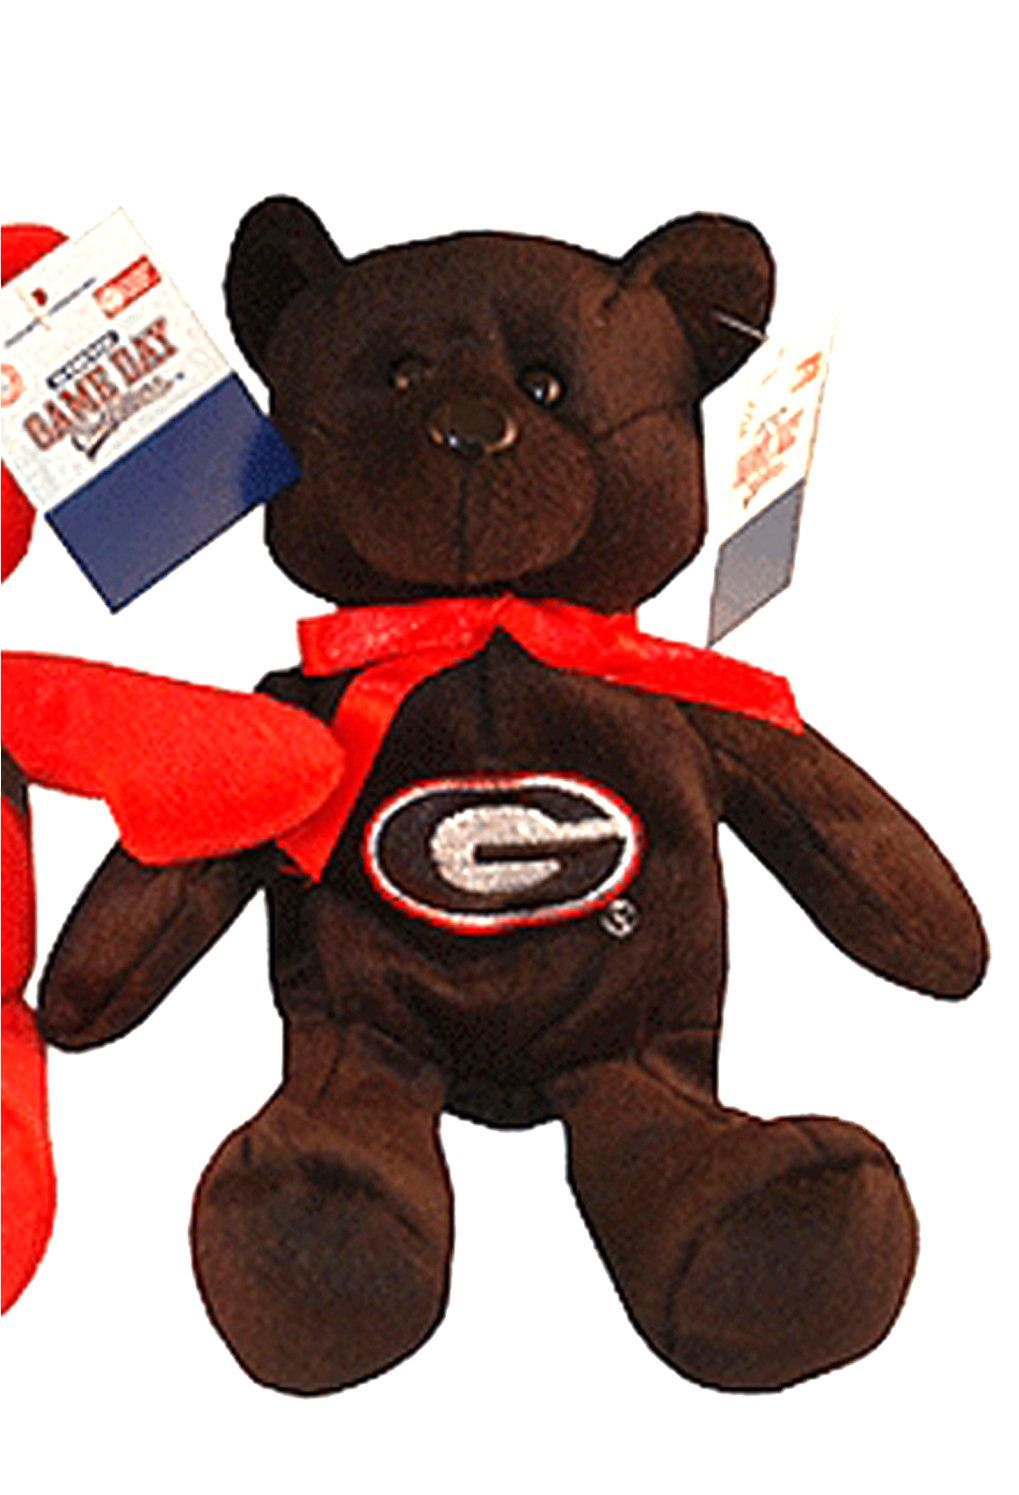 Jenkins Enterprises Game Day Outfitters University of Georgia Plush Beanie  Bear MPN  21421 CONDITION  New SIZE  8.5 in x 7.5 in x 3 in MATERIAL  Plush  AGE  ... 9ac4bf04c